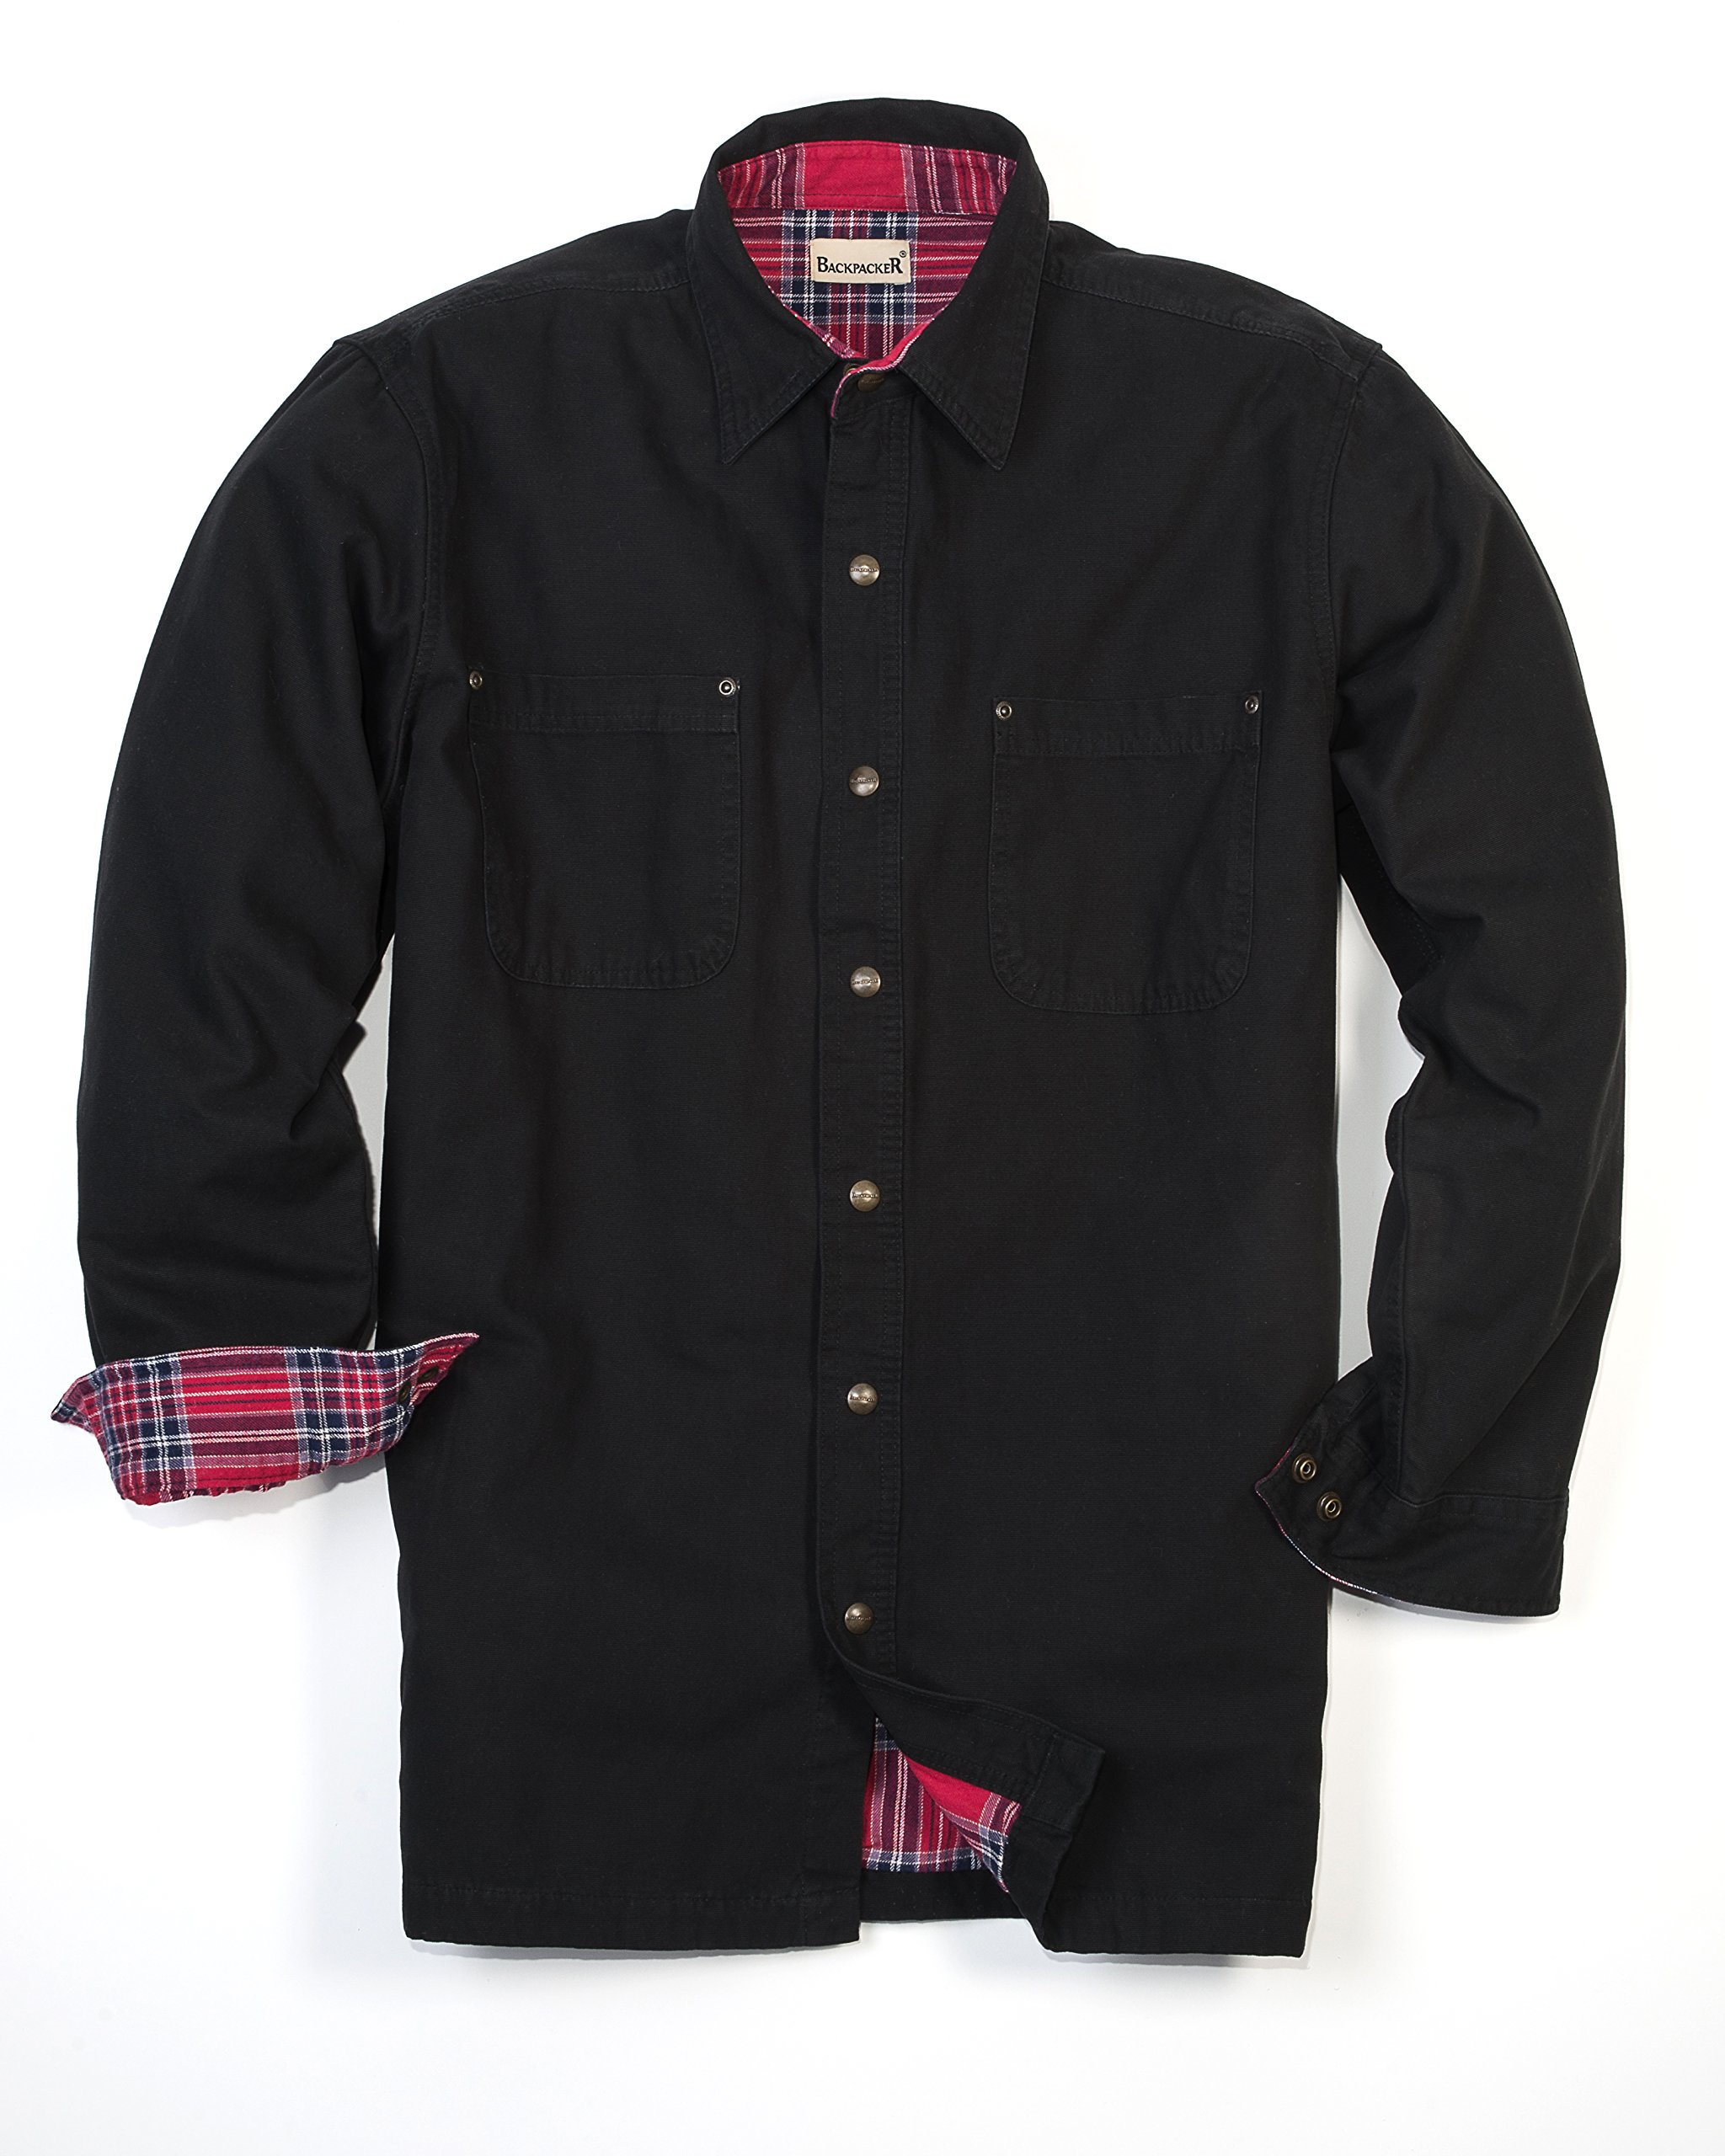 Backpacker Canvas/Flannel Lined Shirt Jacket, Black, Medium